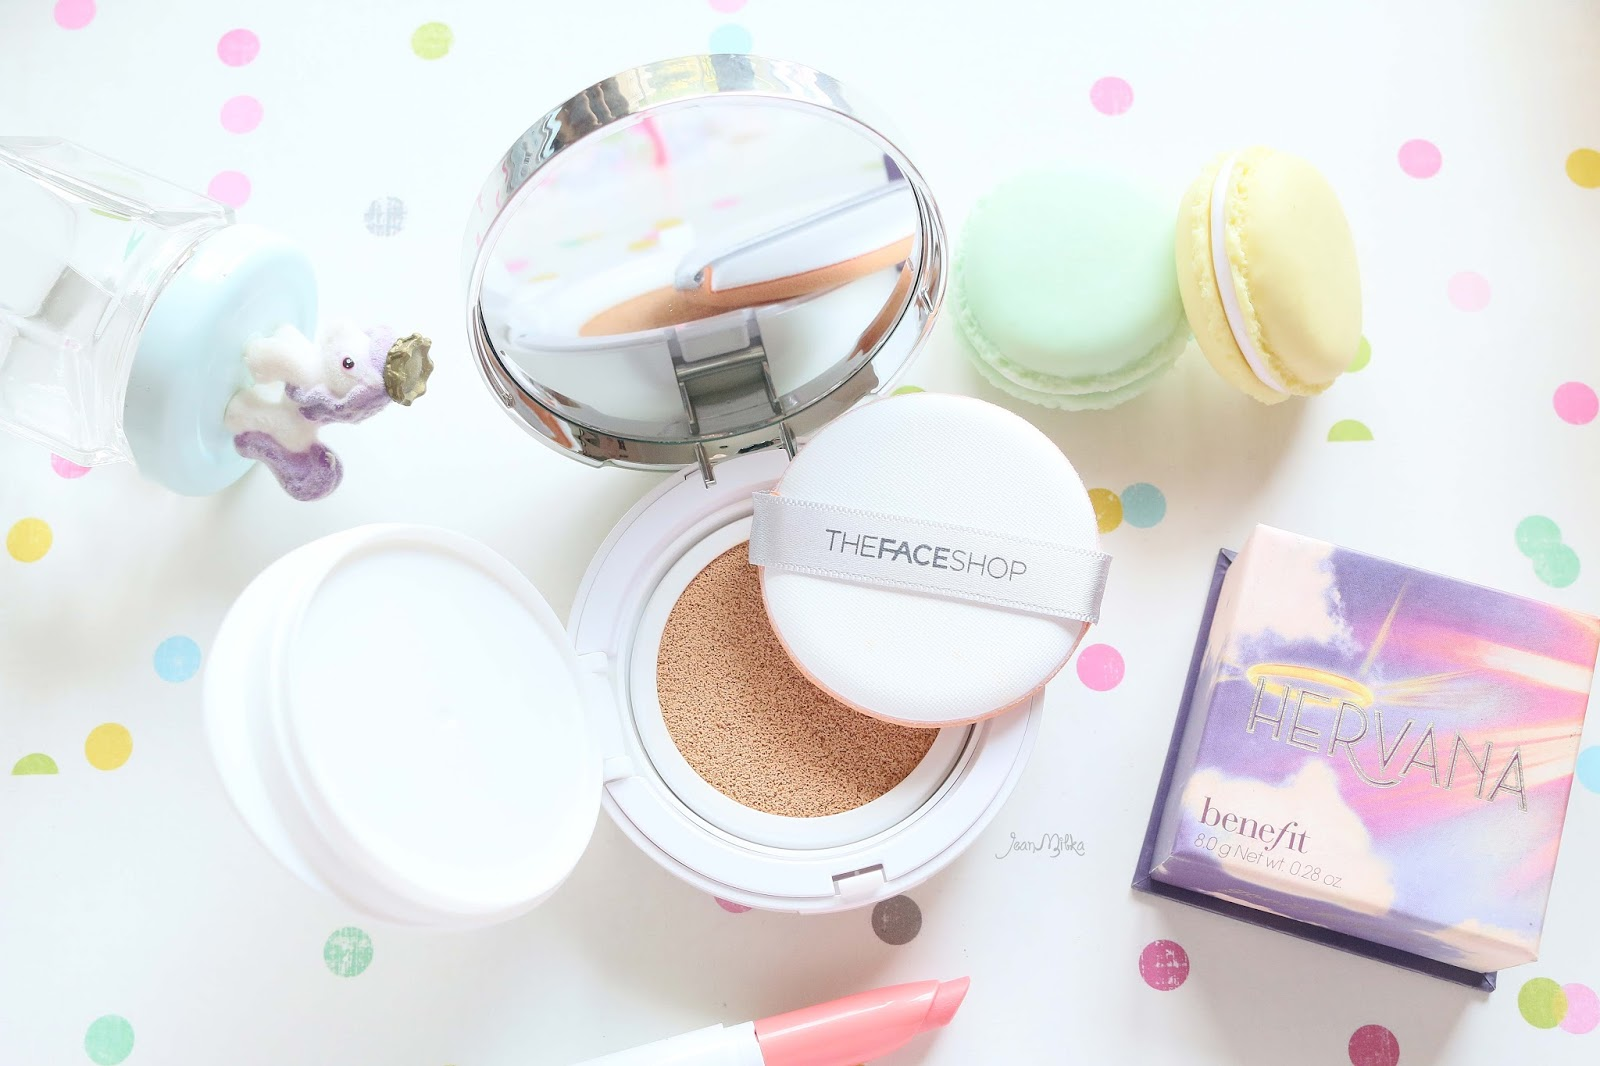 cushion, face shop, the face shop, blogger, bb cushion, korea, korean makeup, makeup, easy makeup, review, blog